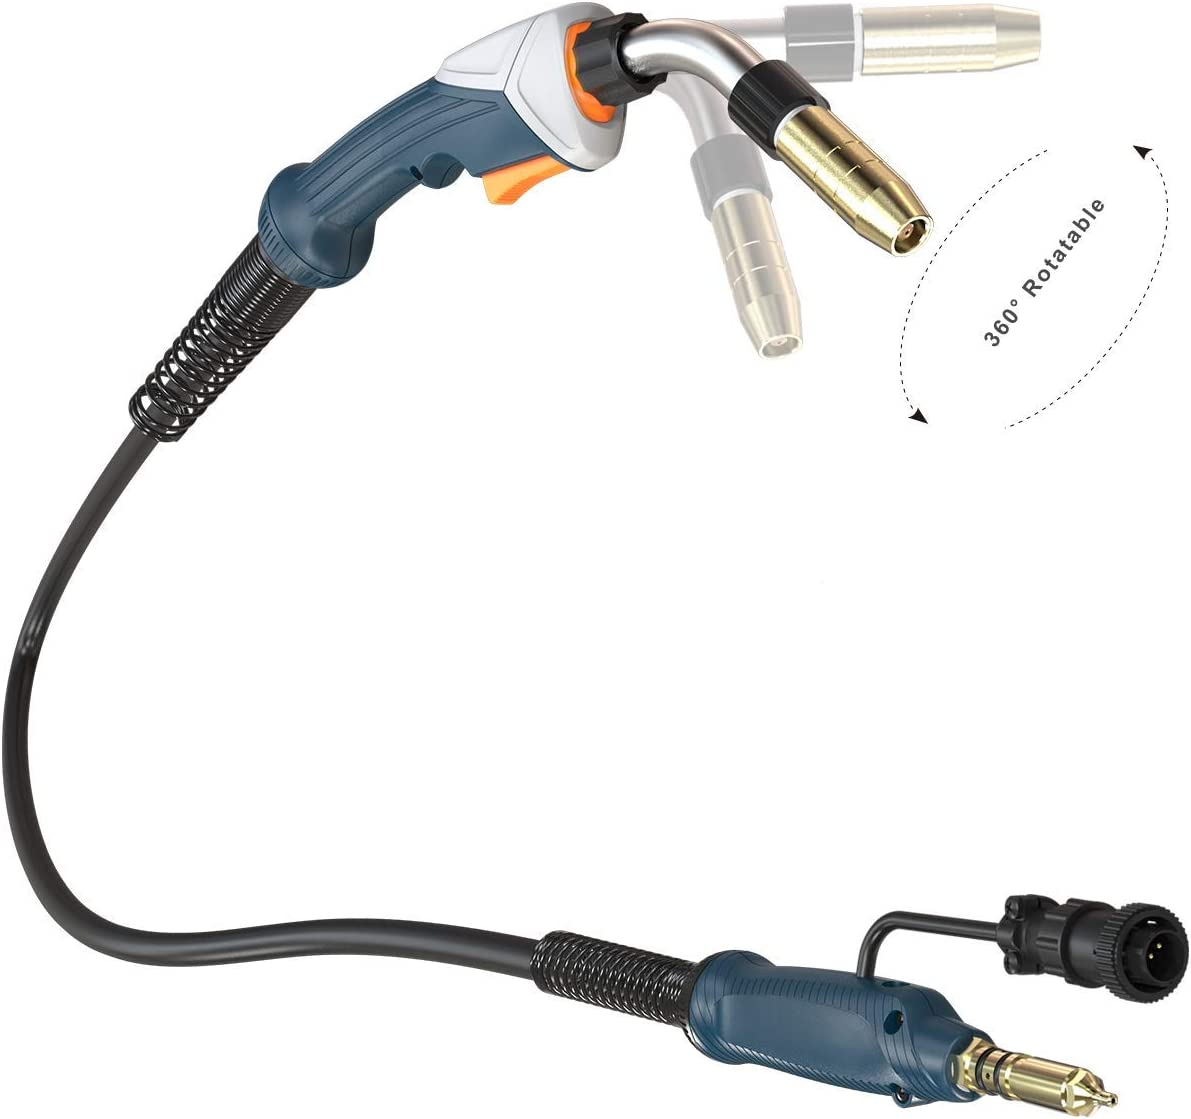 Flexible MIG Torch professional Replacement Tweco MIG Torch Miller Fitting connection